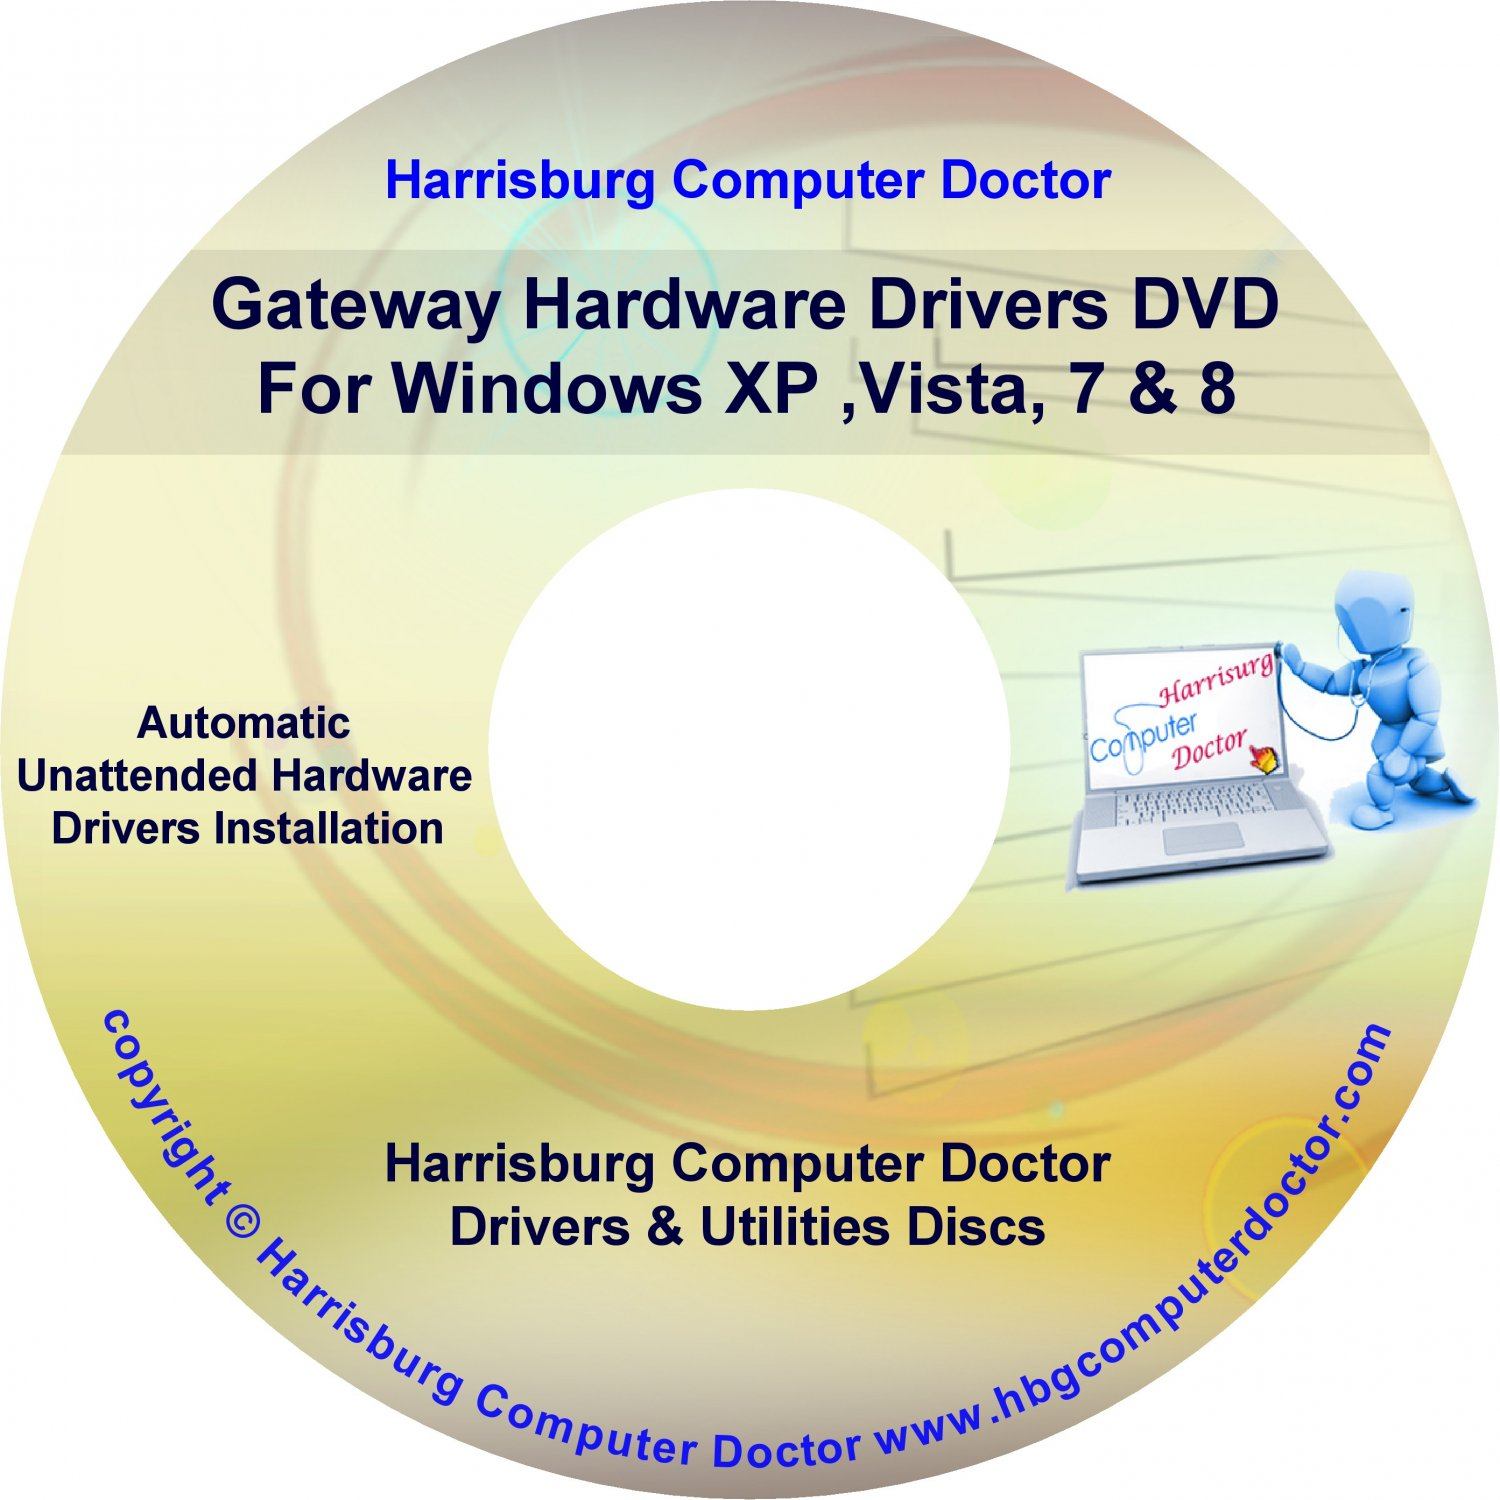 Gateway S-5600D Drivers DVD For Windows, XP, Vista, 7 & 8